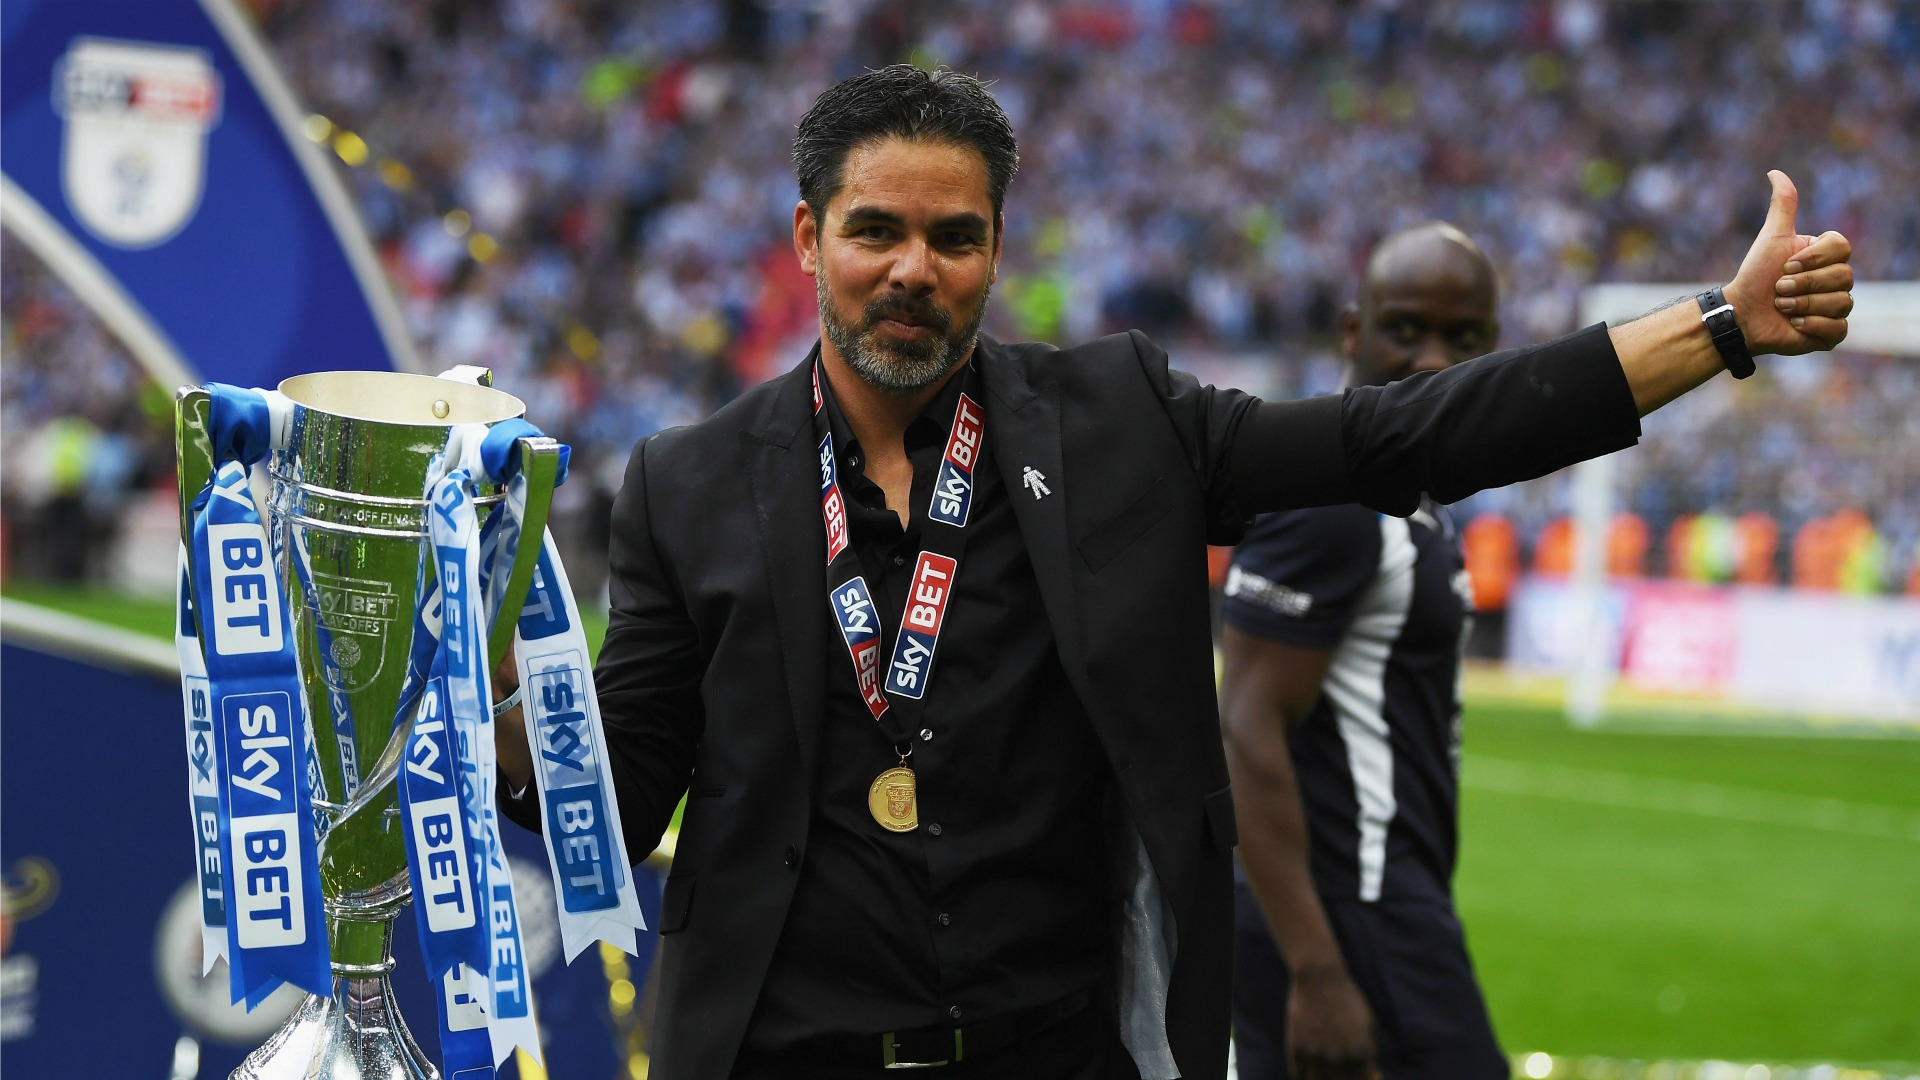 Huddersfield Town promoted to Premier League: David Wagner 'in fairy tale'